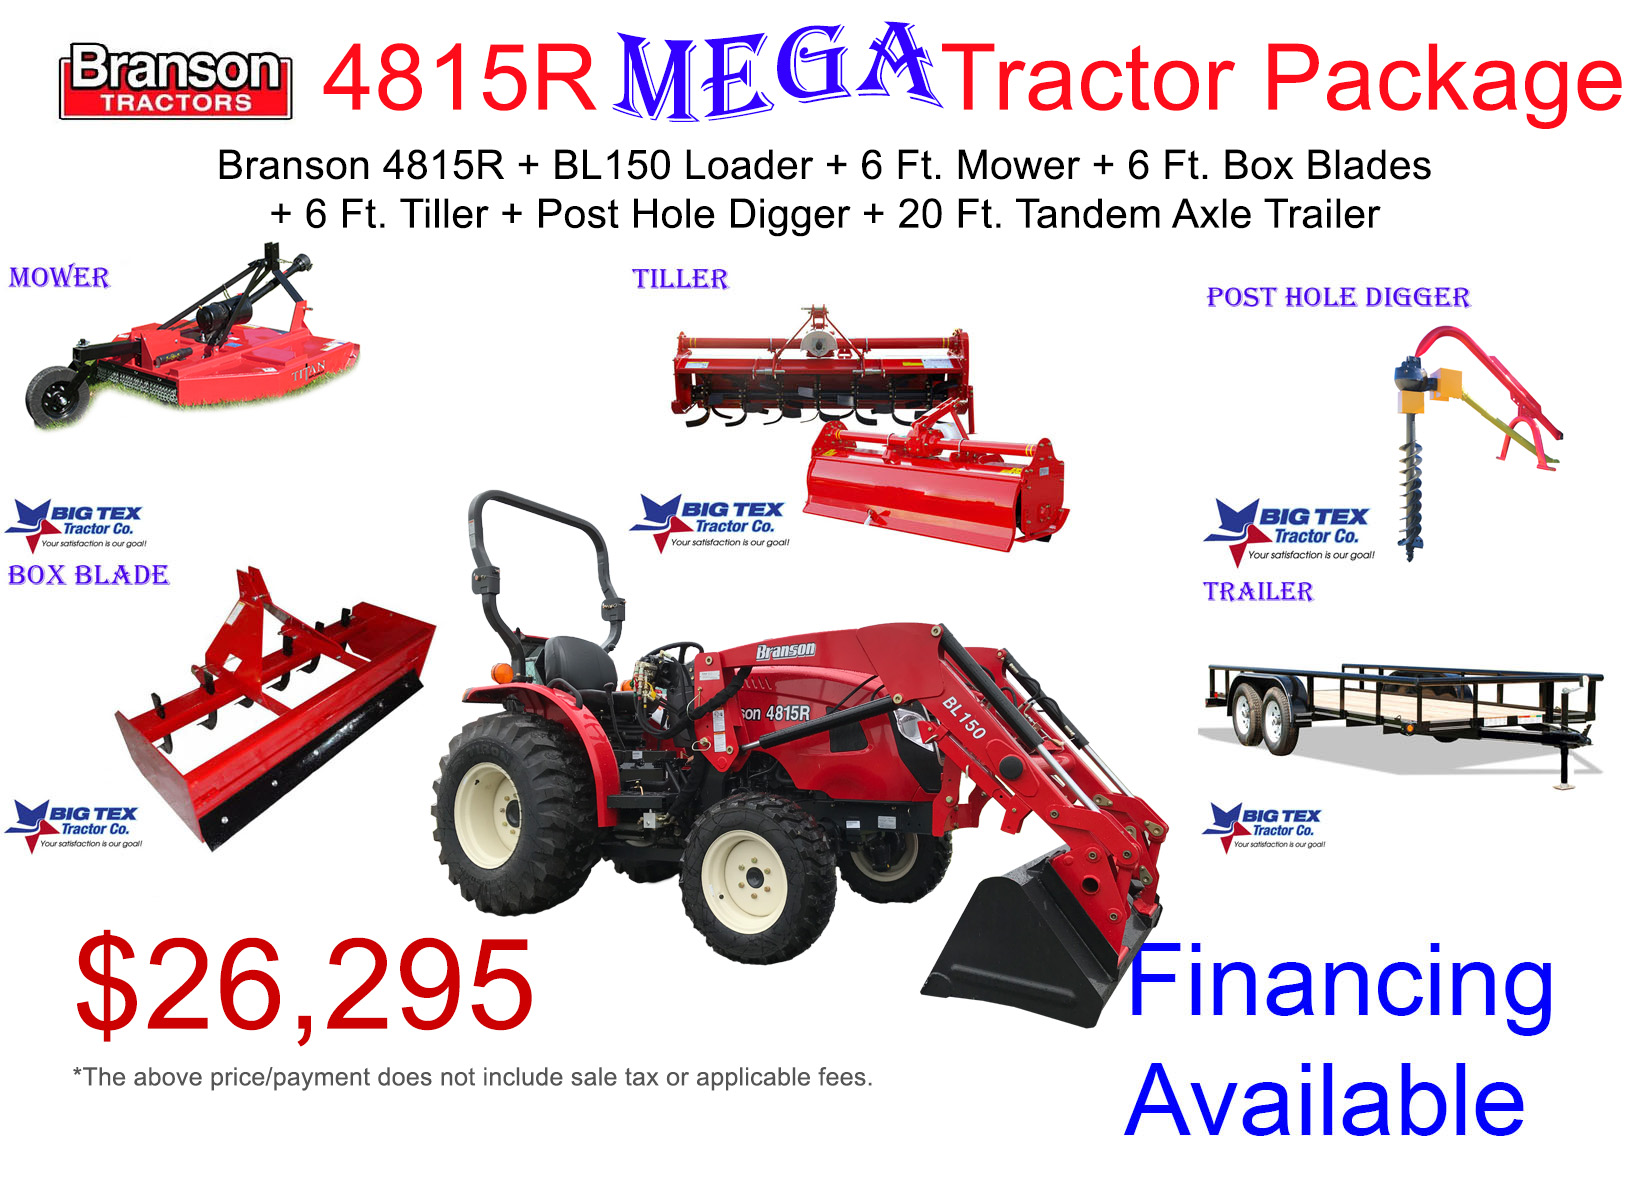 Big Tex Tractor  Branson 4815R Mega Tractor Package Deal